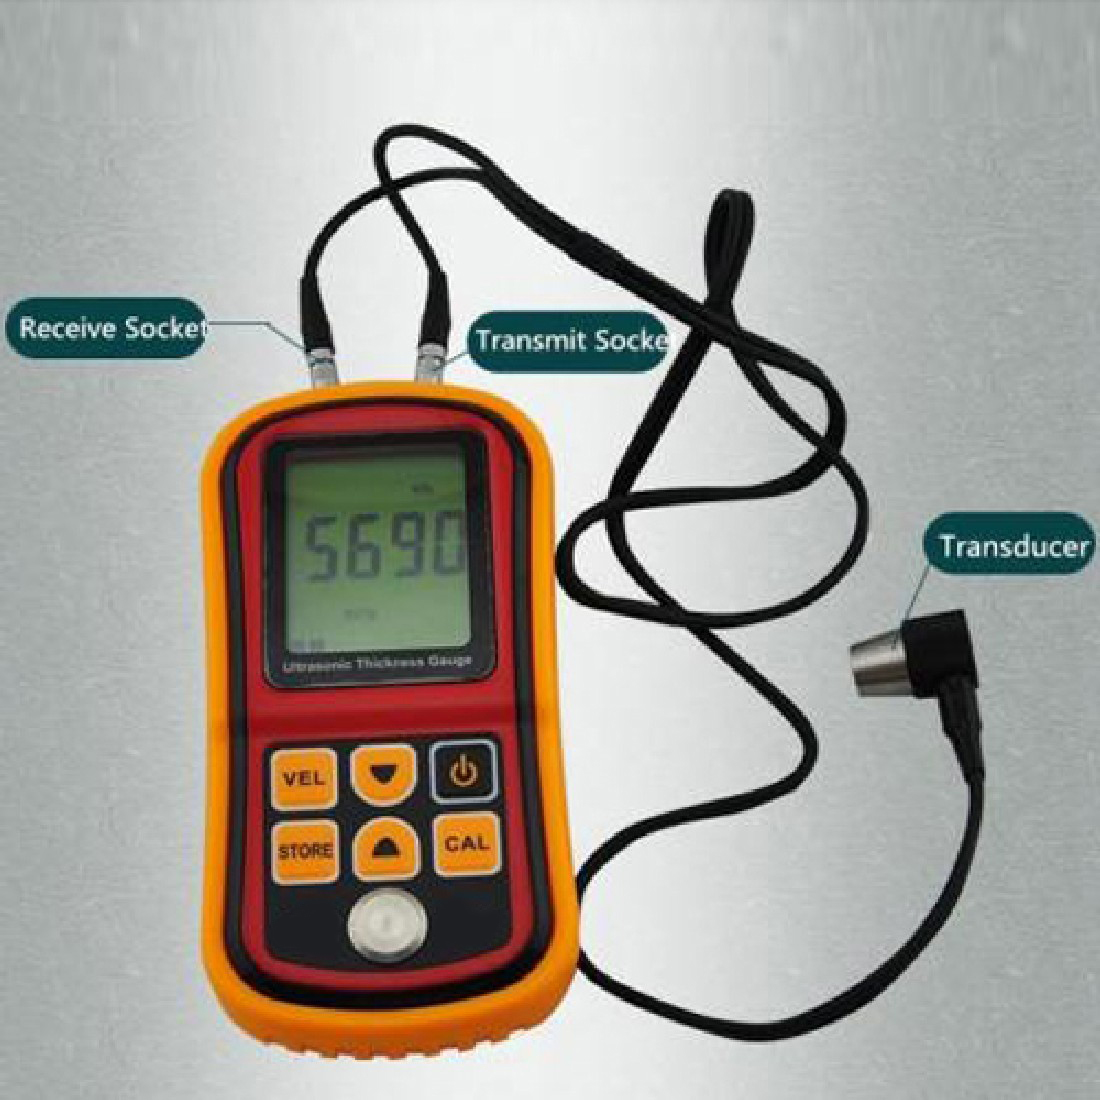 цена на Thickness Gauge Gm100 Limited Coating Ultrasonic Wall Thickness Gauge Meter Tester Steel Pvc Digital Testing